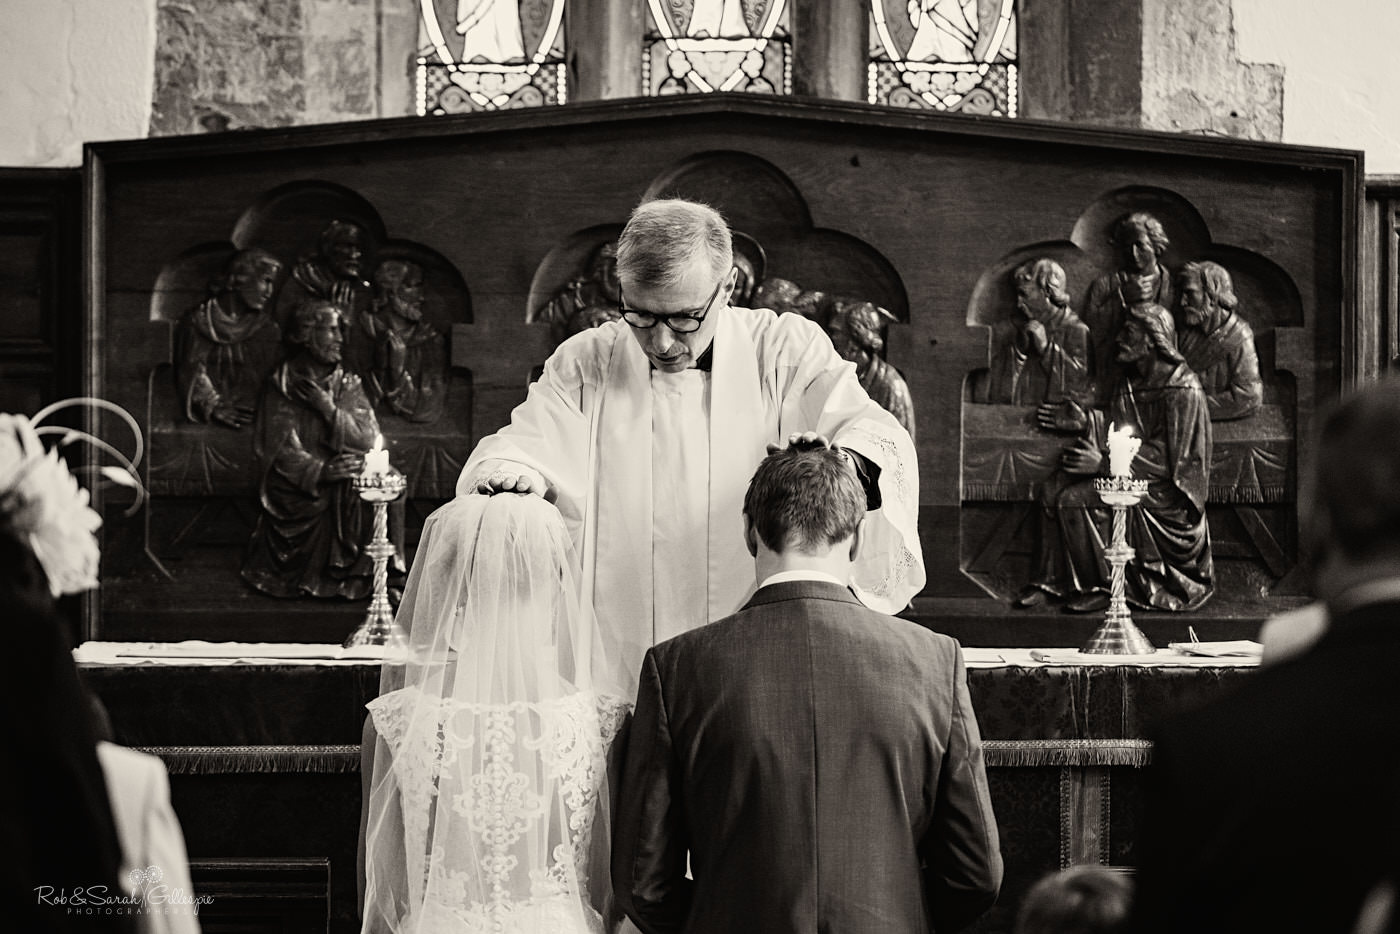 Wedding blessing at St Kenelm's church in Worcestershire